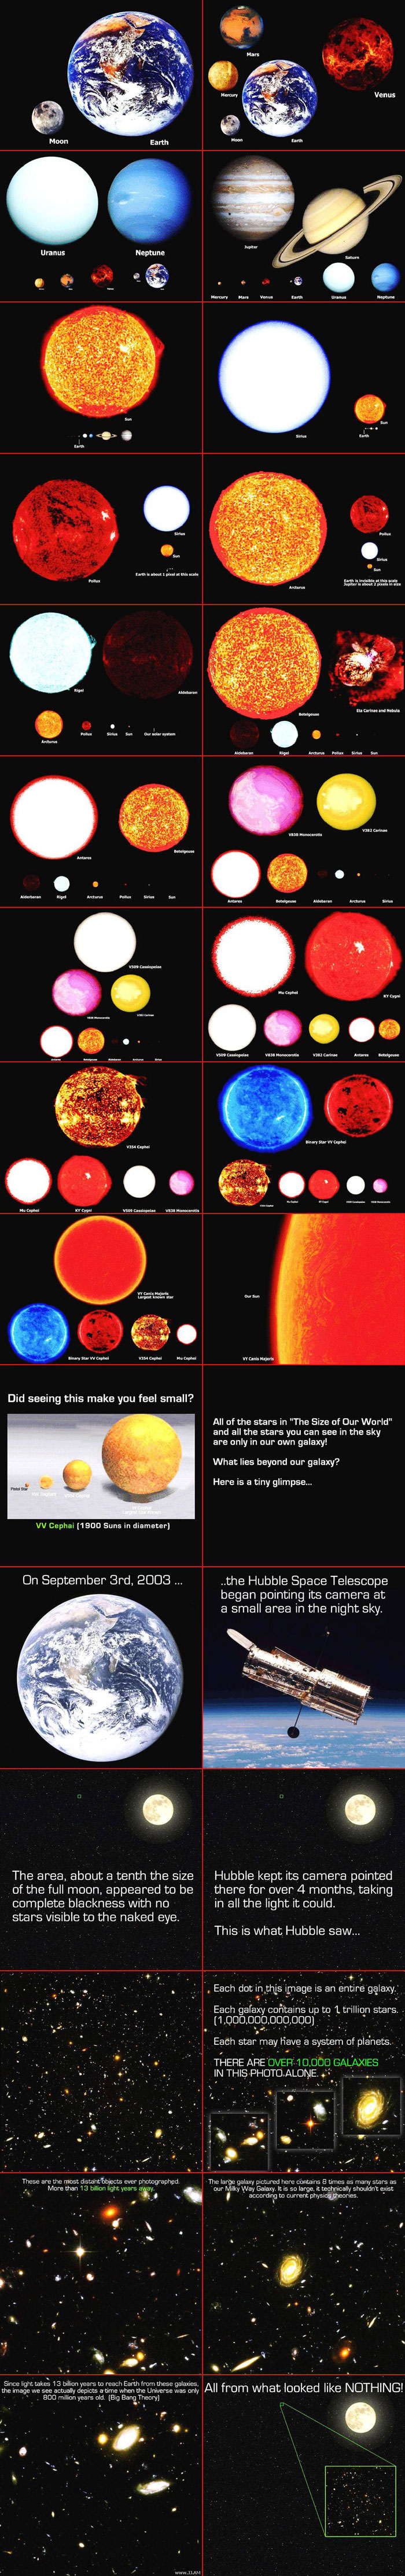 the universe is huge